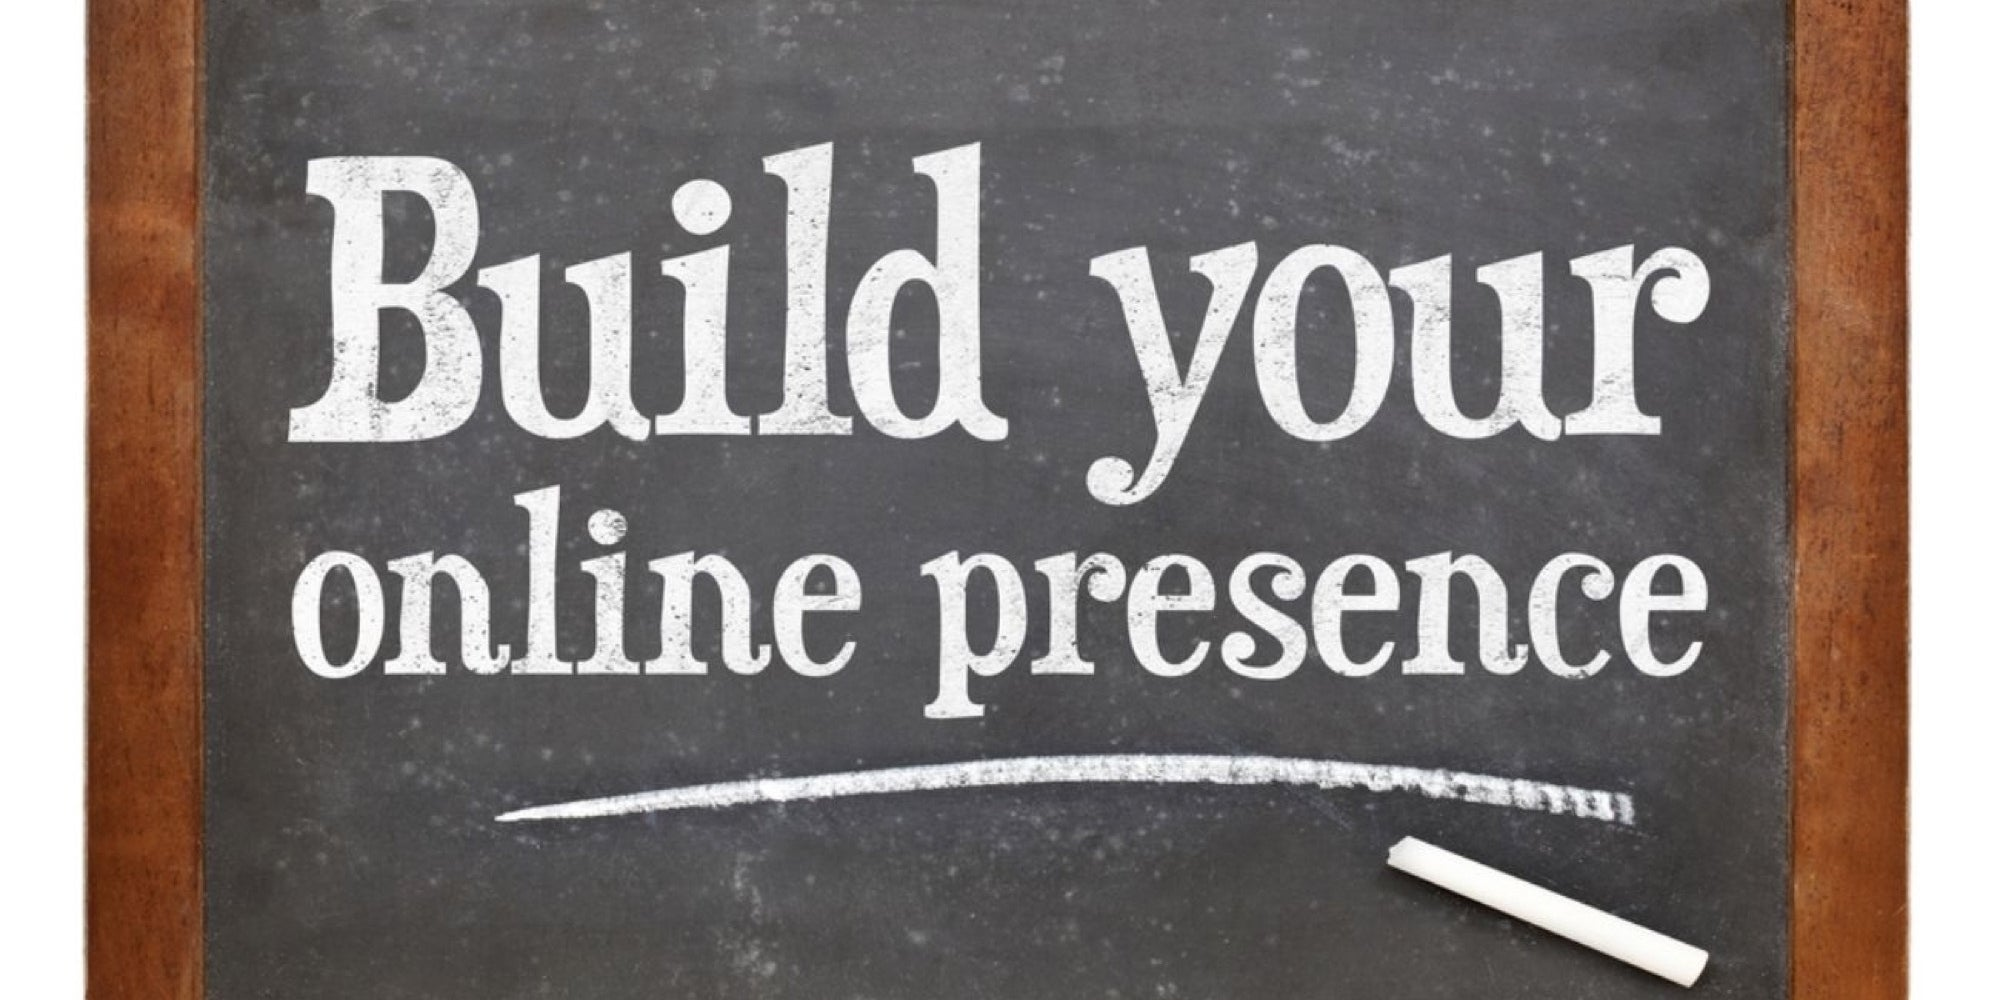 Treating your online presence like a one-time investment